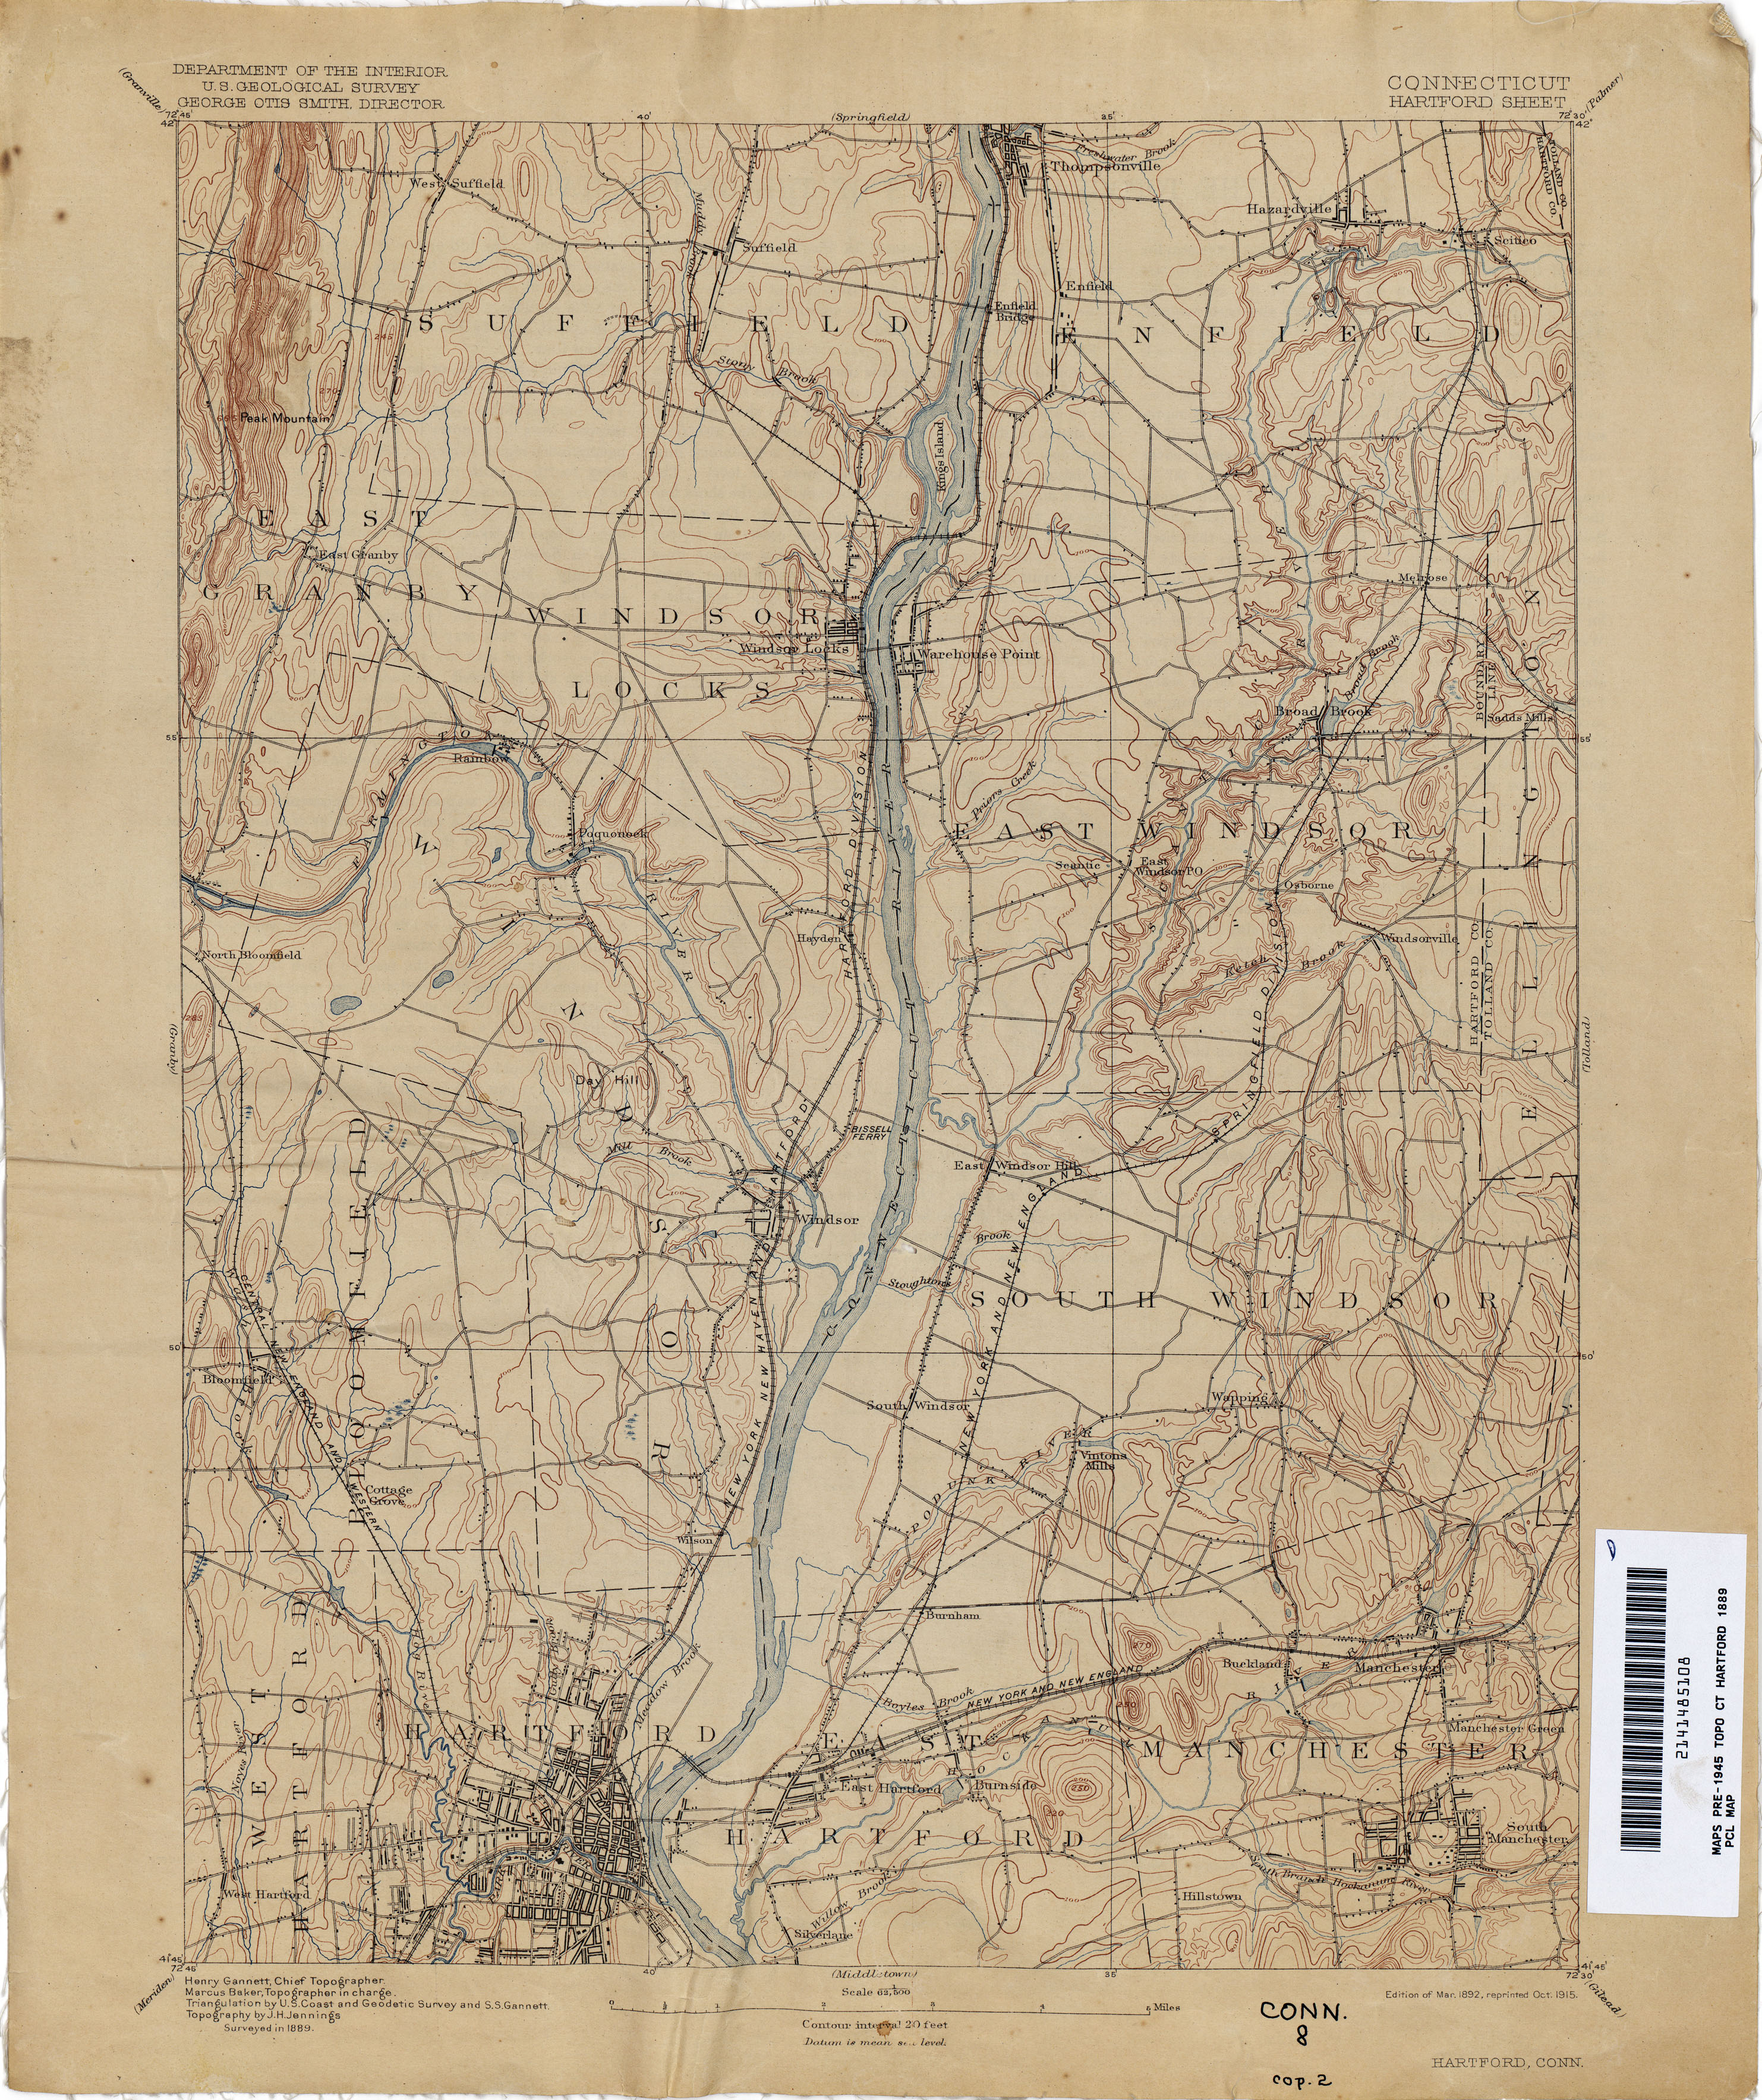 Connecticut Historical Topographic Maps - Perry-Castañeda Map ... on map of 81 in virginia, map of 81 through virginia, map of 81 virginia exits, map of i 15, map of i 65, map of interstate 81 exits, map of interstate 81 south, map rt 8.1 tn, map of interstate 81 roanoke virginia, map of i 49, map of i 77, map of interstate 81 in pa, map of route 81 south,